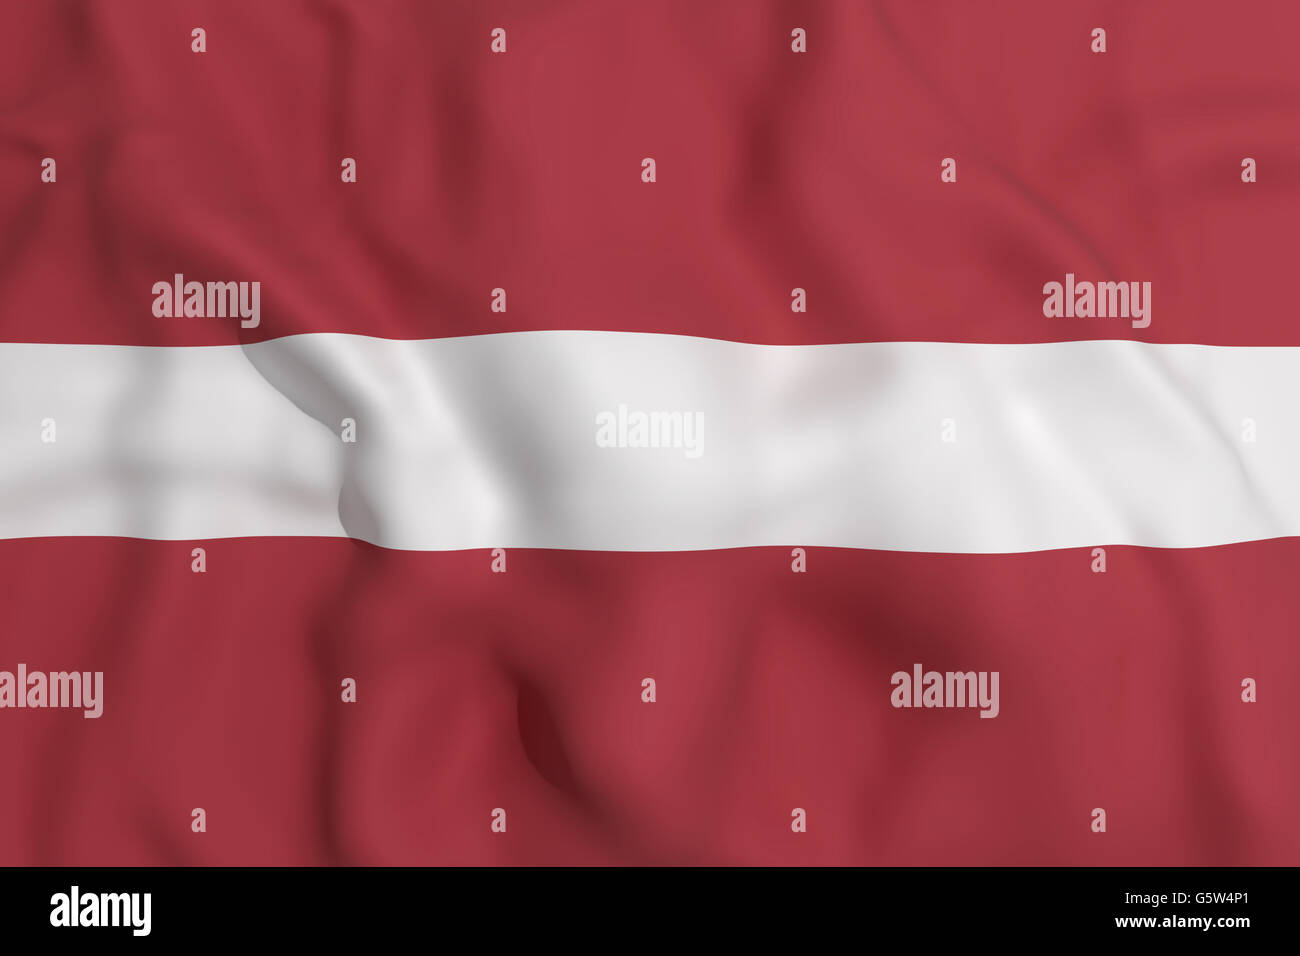 3d rendering of a Letonia flag waving - Stock Image